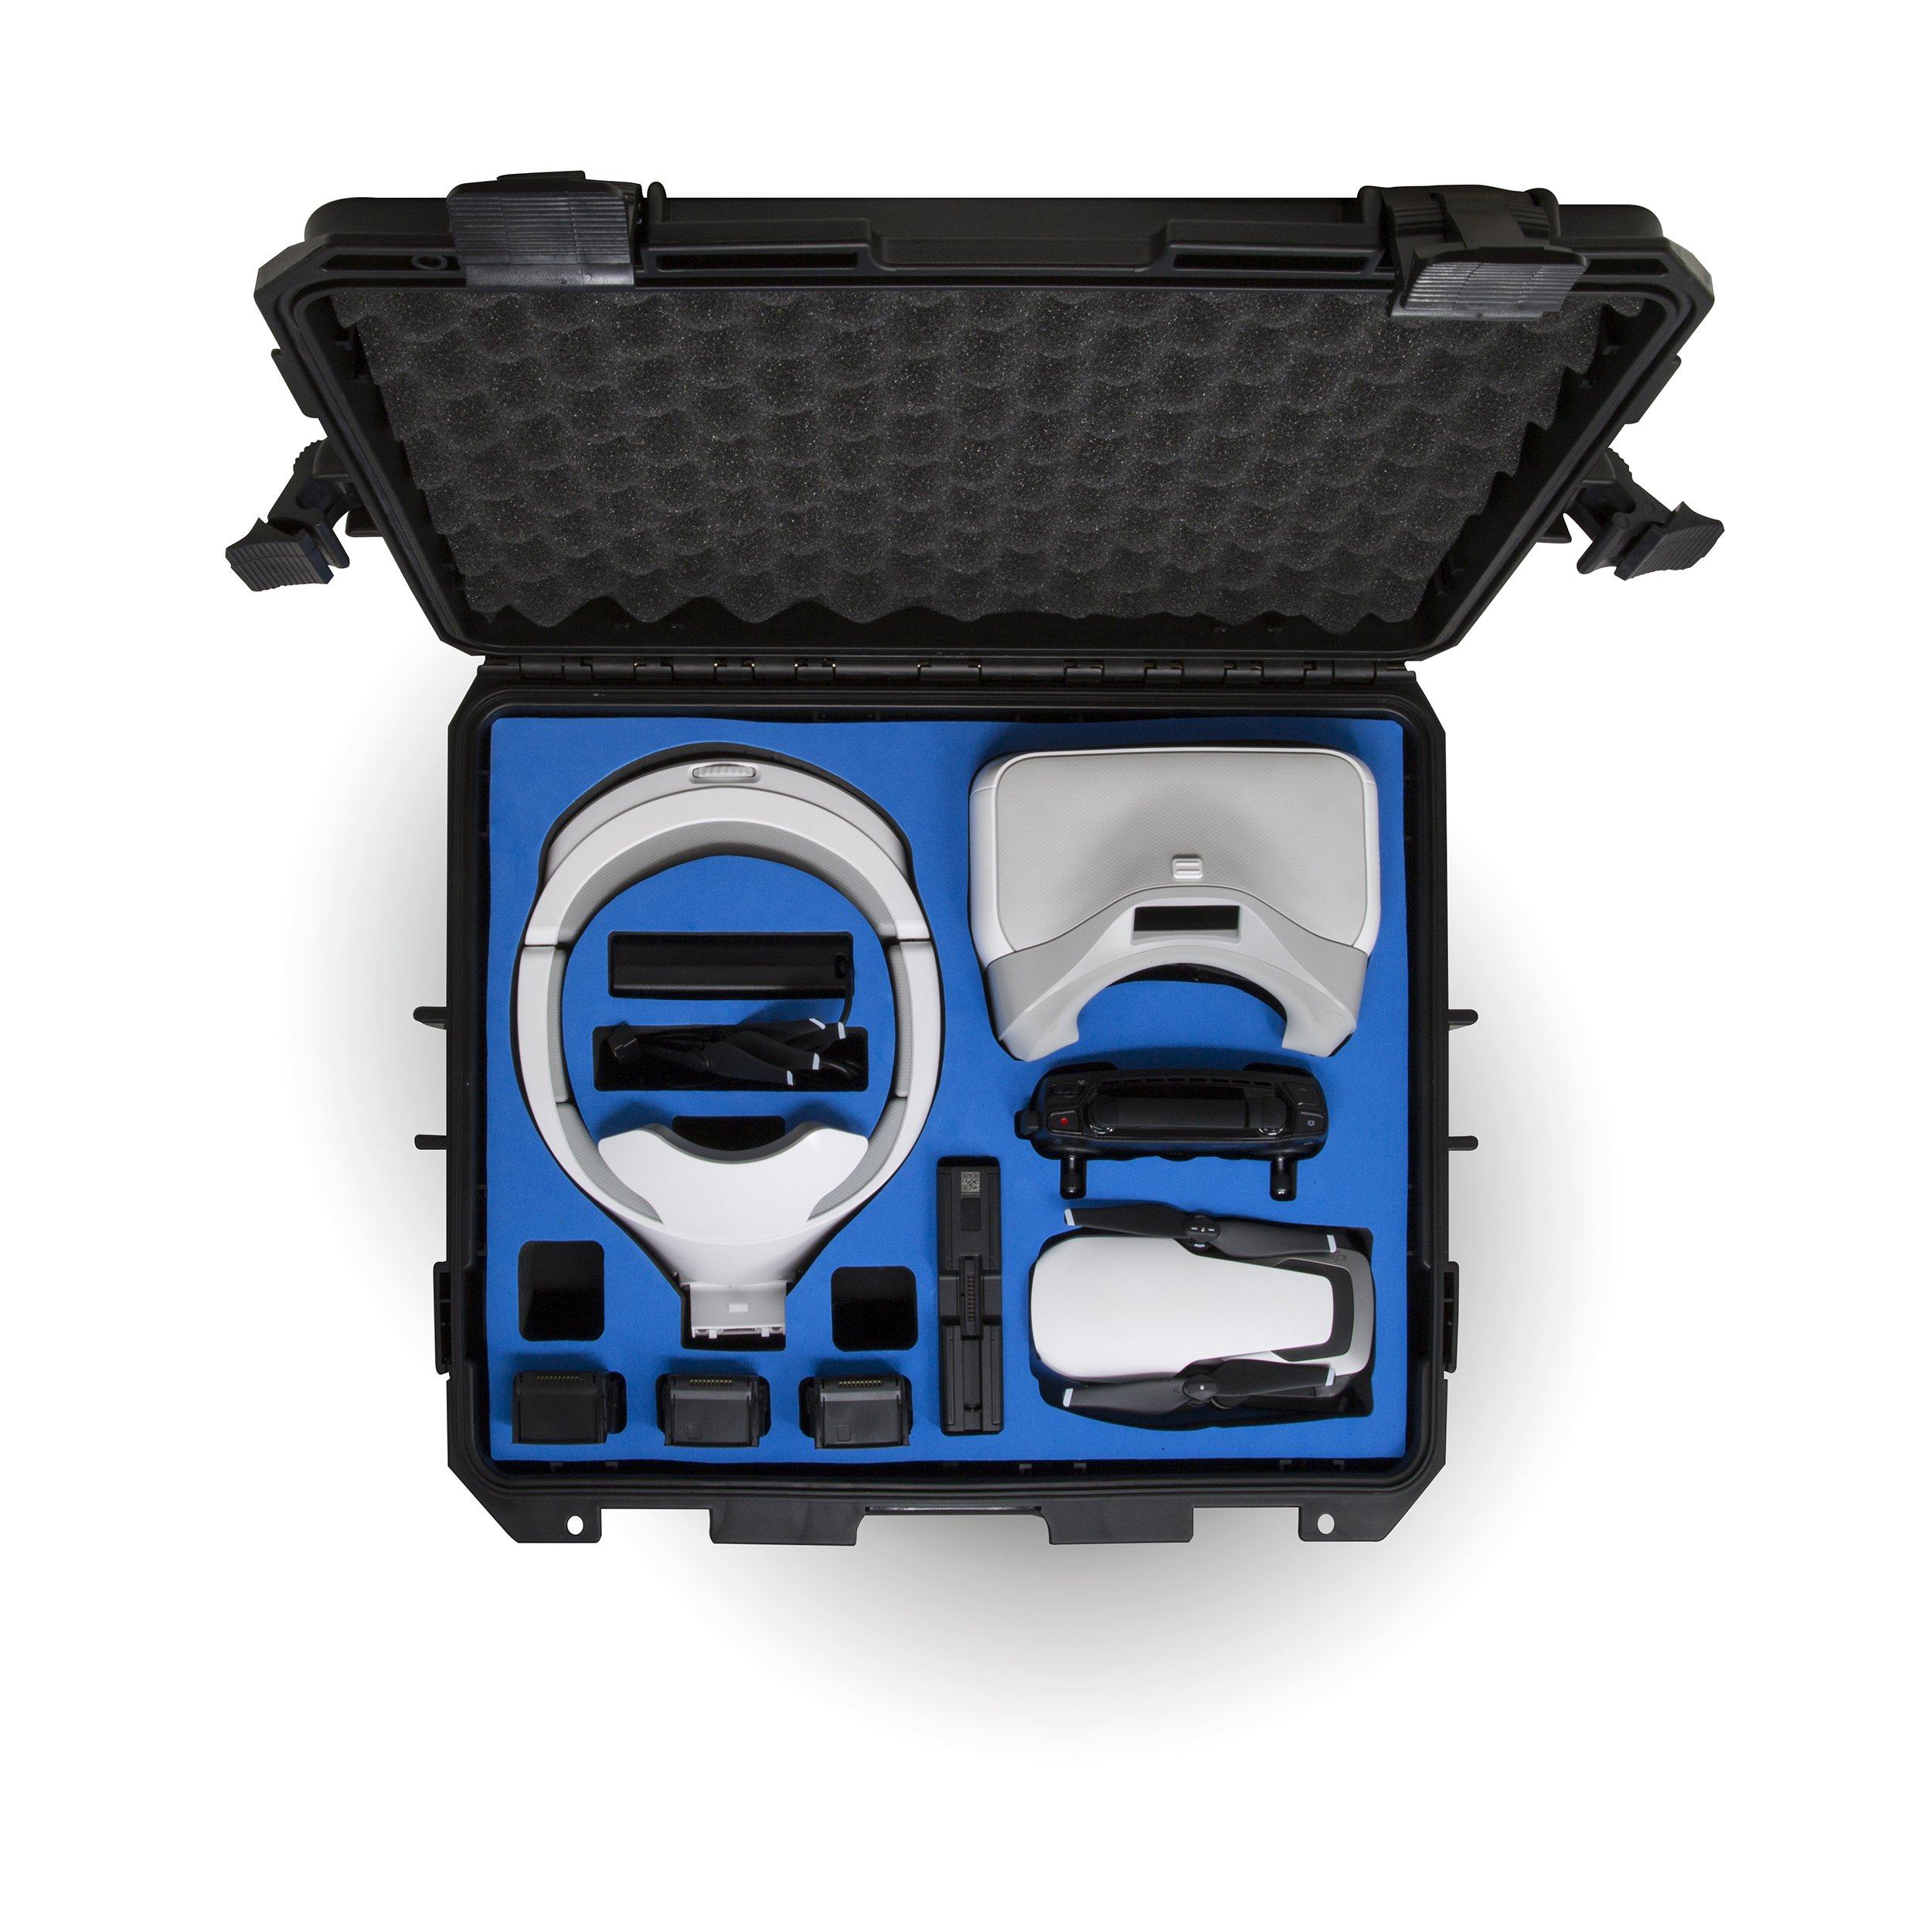 Ultimaxx Water Proof Rugged Compact Storage Hard Case for DJI FPV VR Goggles and DJI Mavic Air + Fits Extra Accessories by Ultimaxx (Image #2)